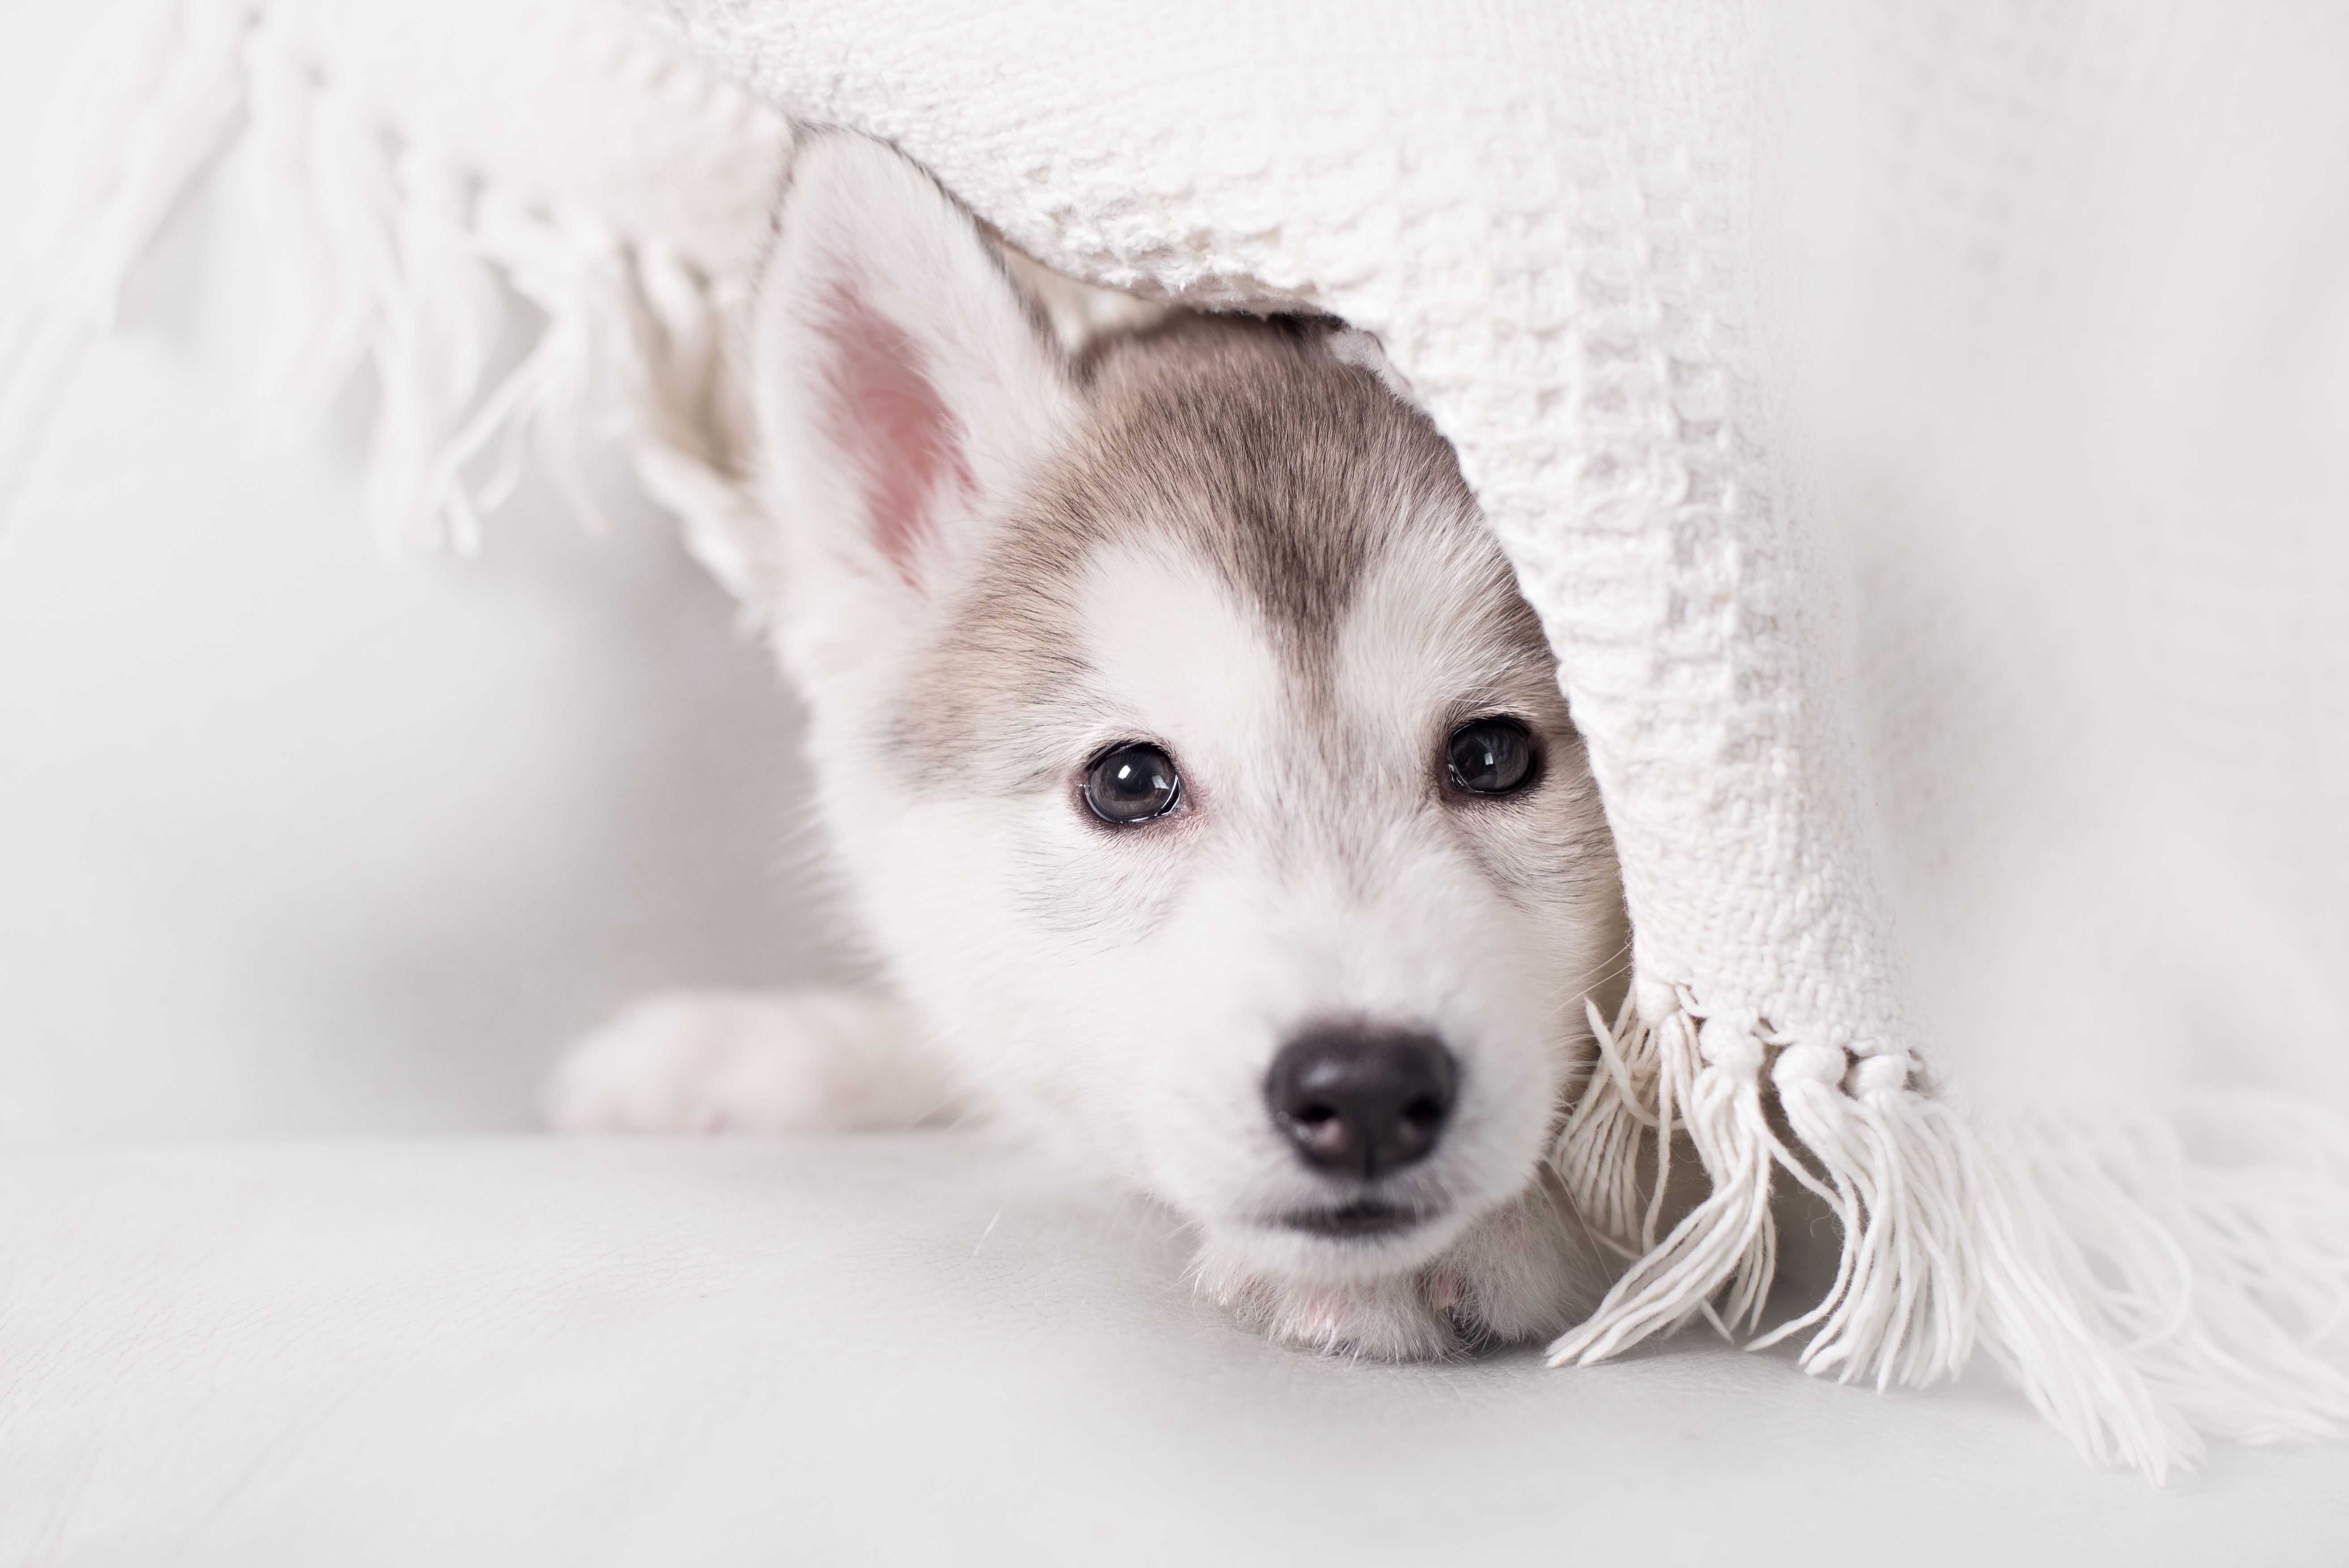 Cute puppy hiding in a blanket